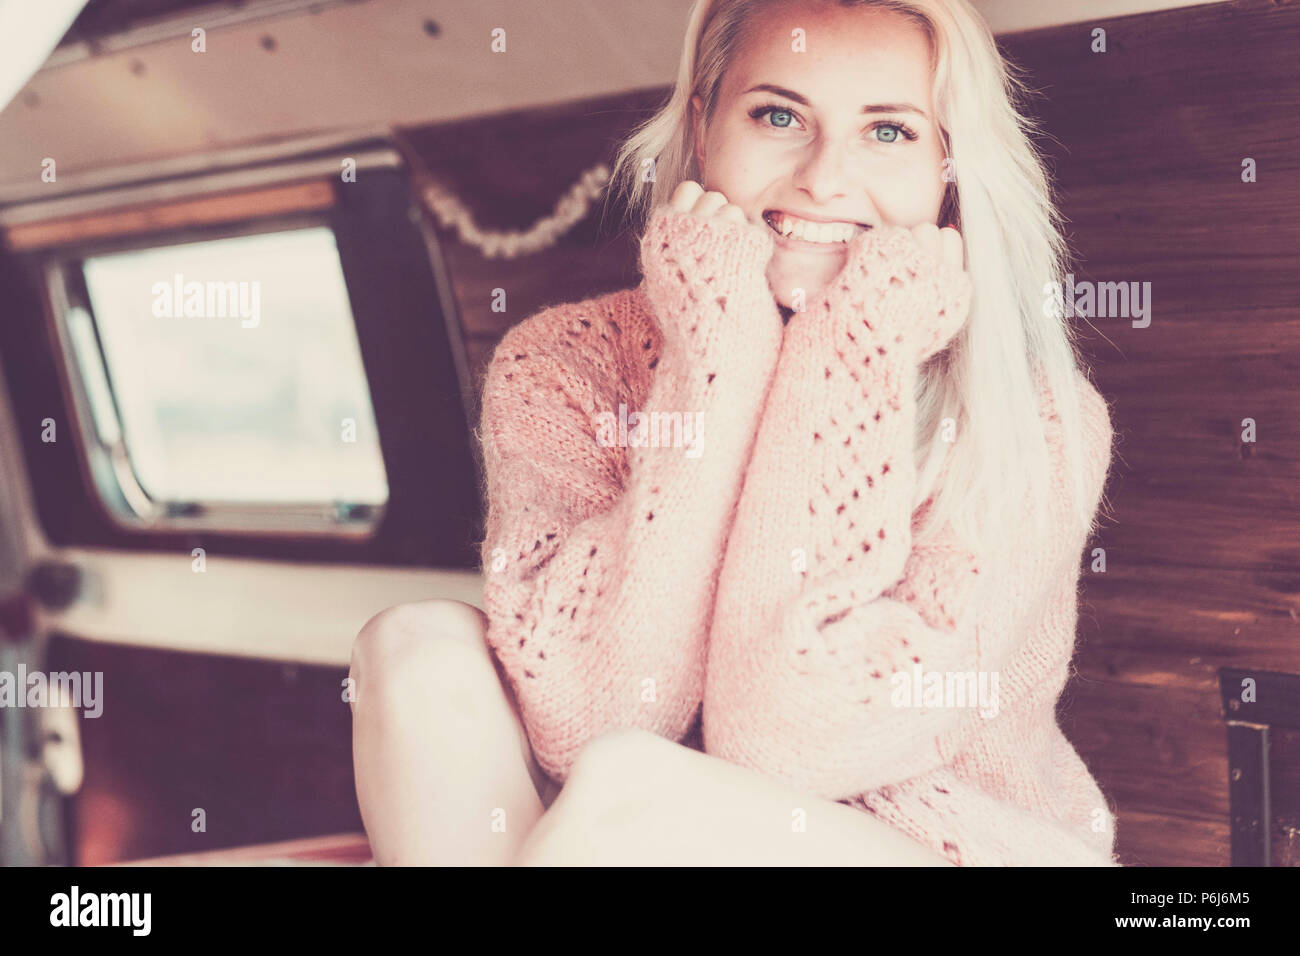 Beautiful blonde model white caucasian skin with beauty face smile at you looking at the camera. sit down in a van with wood interior ready to travel  - Stock Image